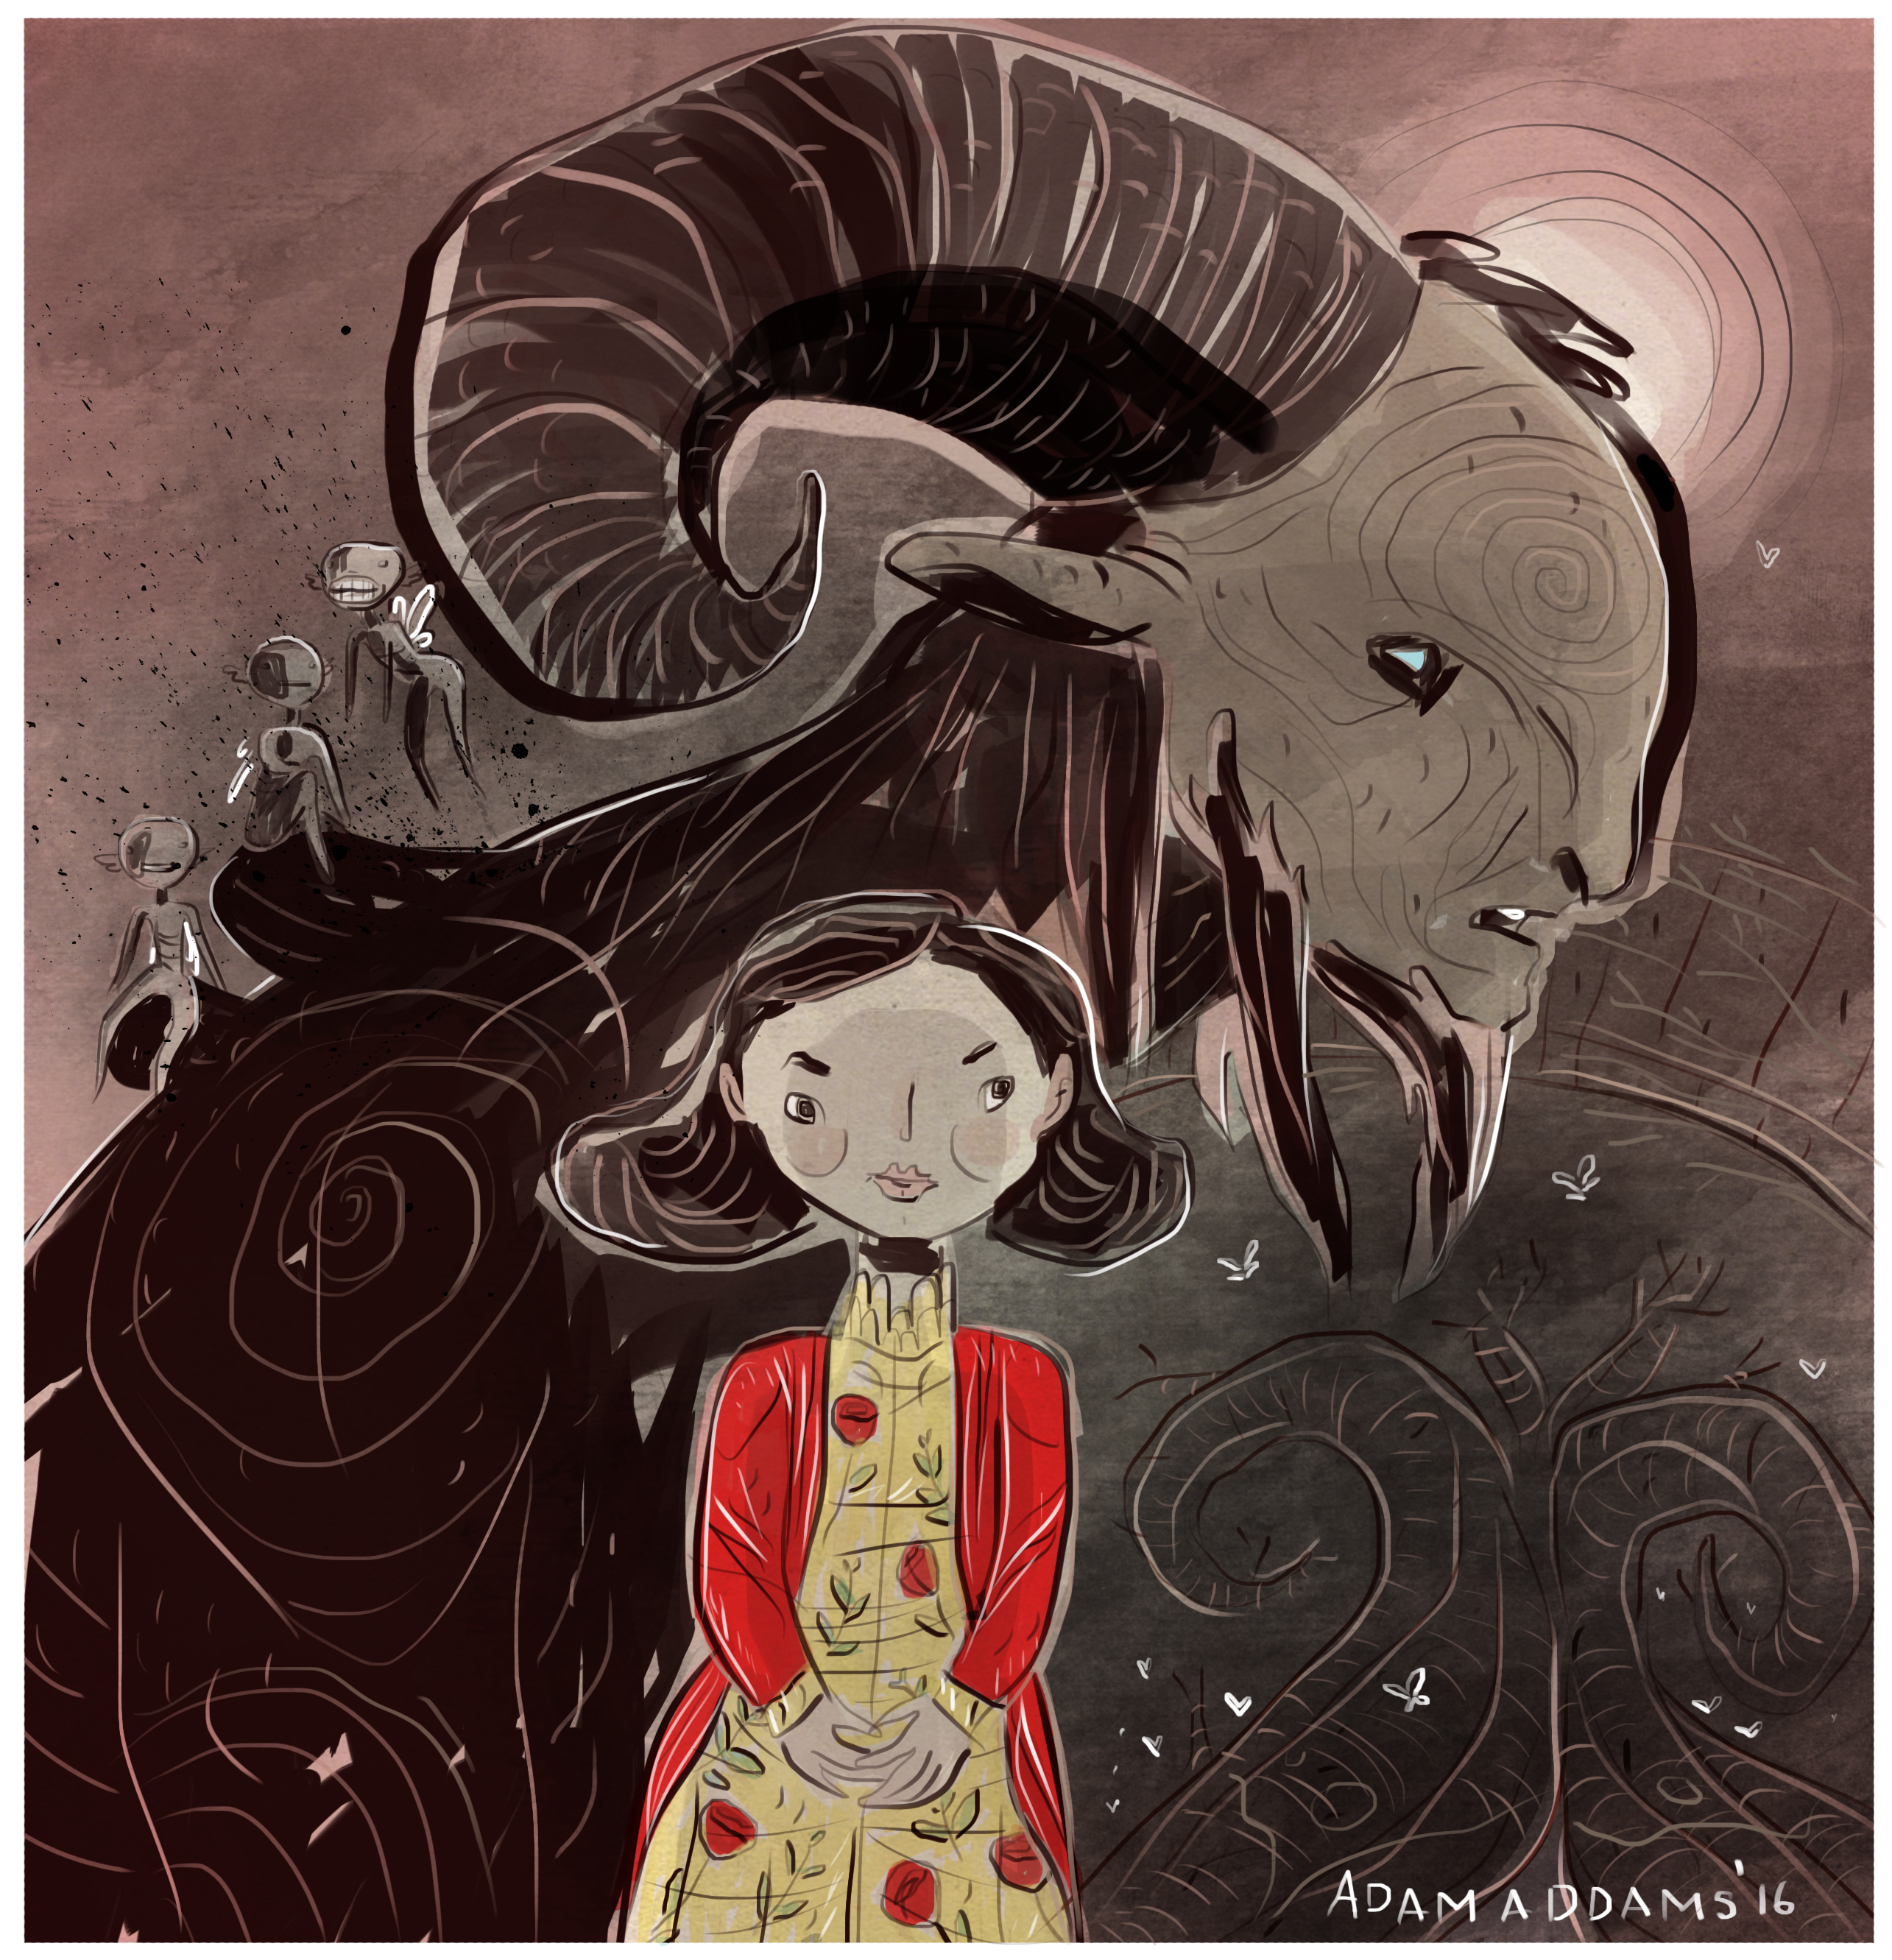 Pan's Labyrinth commission